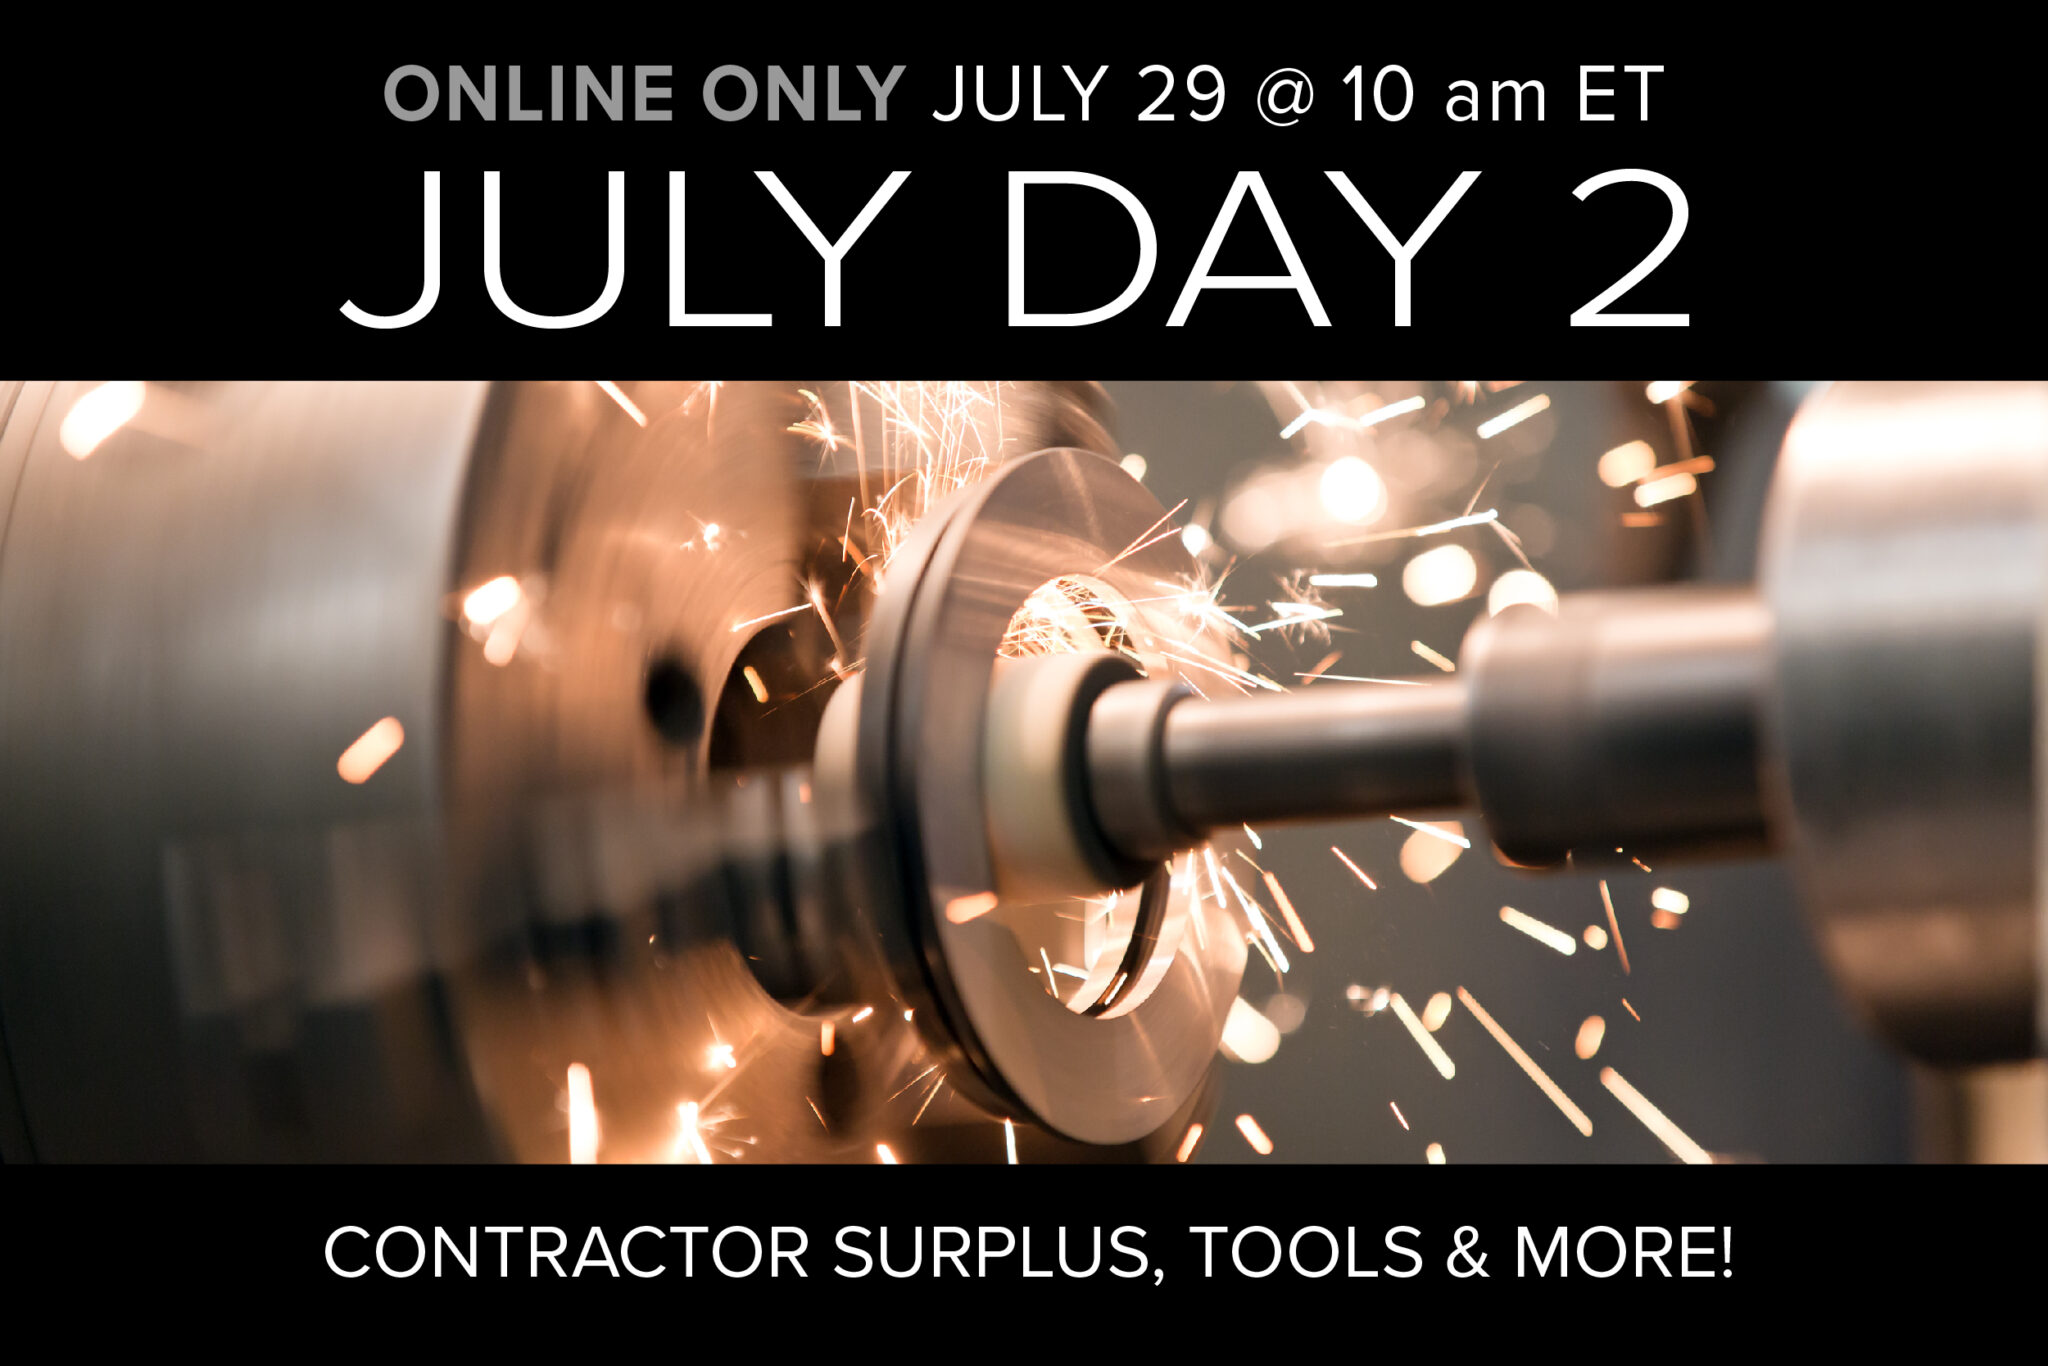 July Day 2 Online Only Auction on July 29 at 10am ET